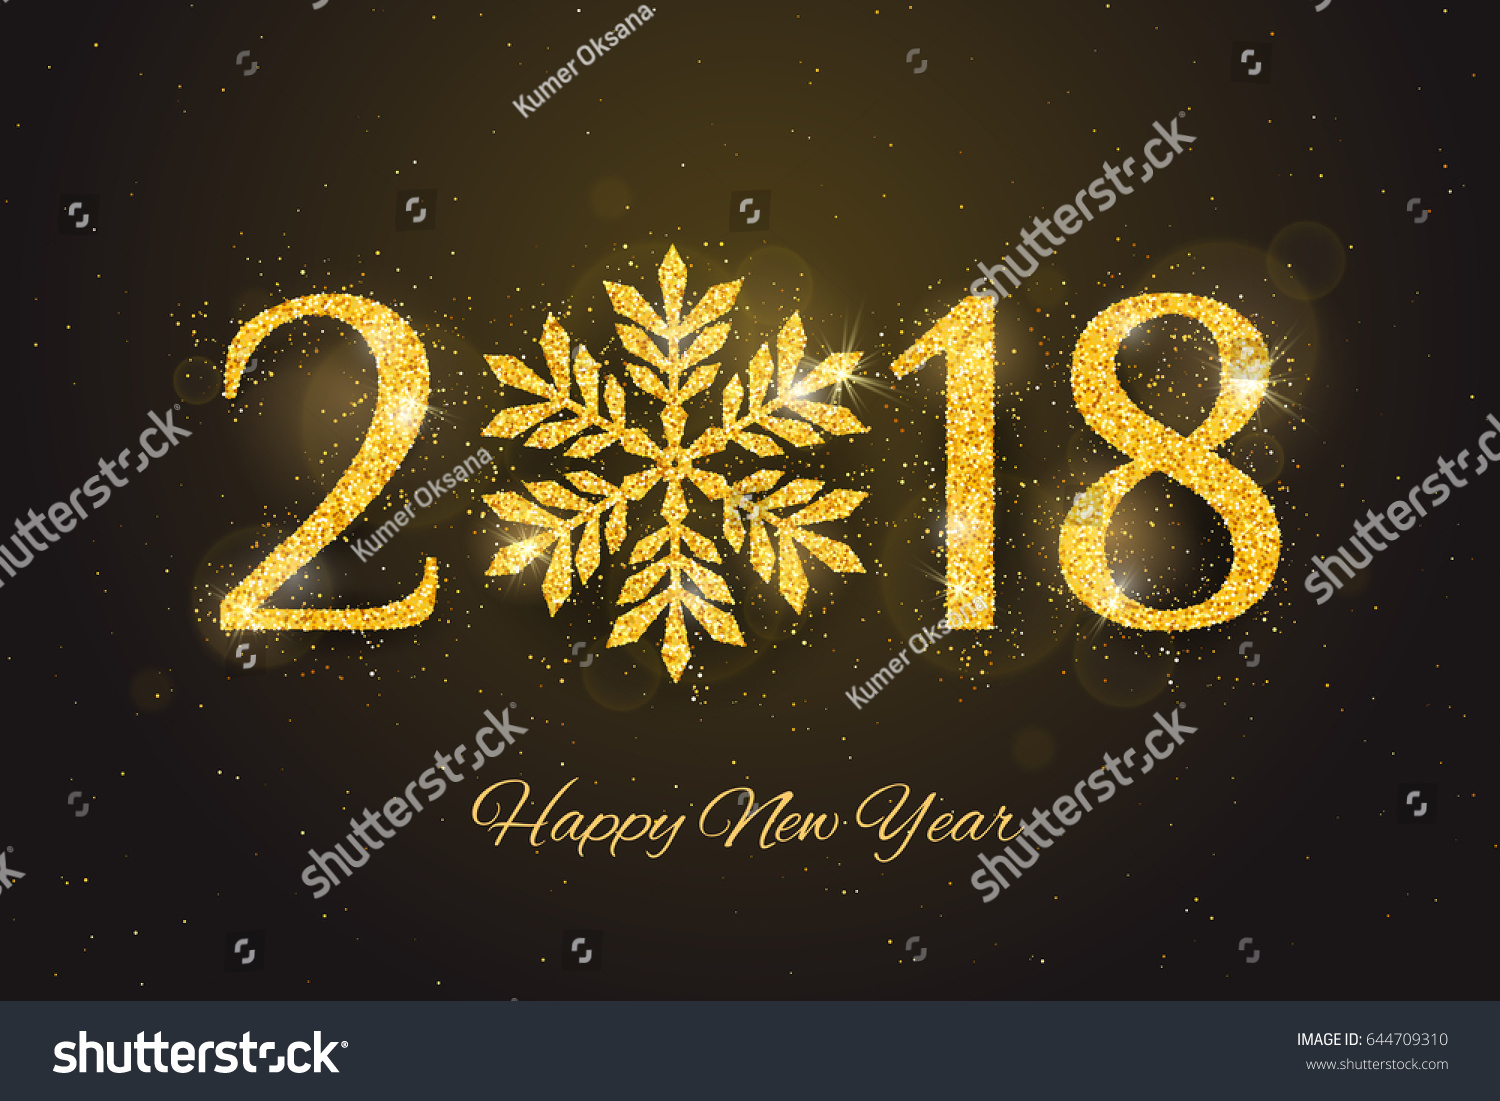 Vector 2018 Happy New Year Merry Stock Vector Royalty Free